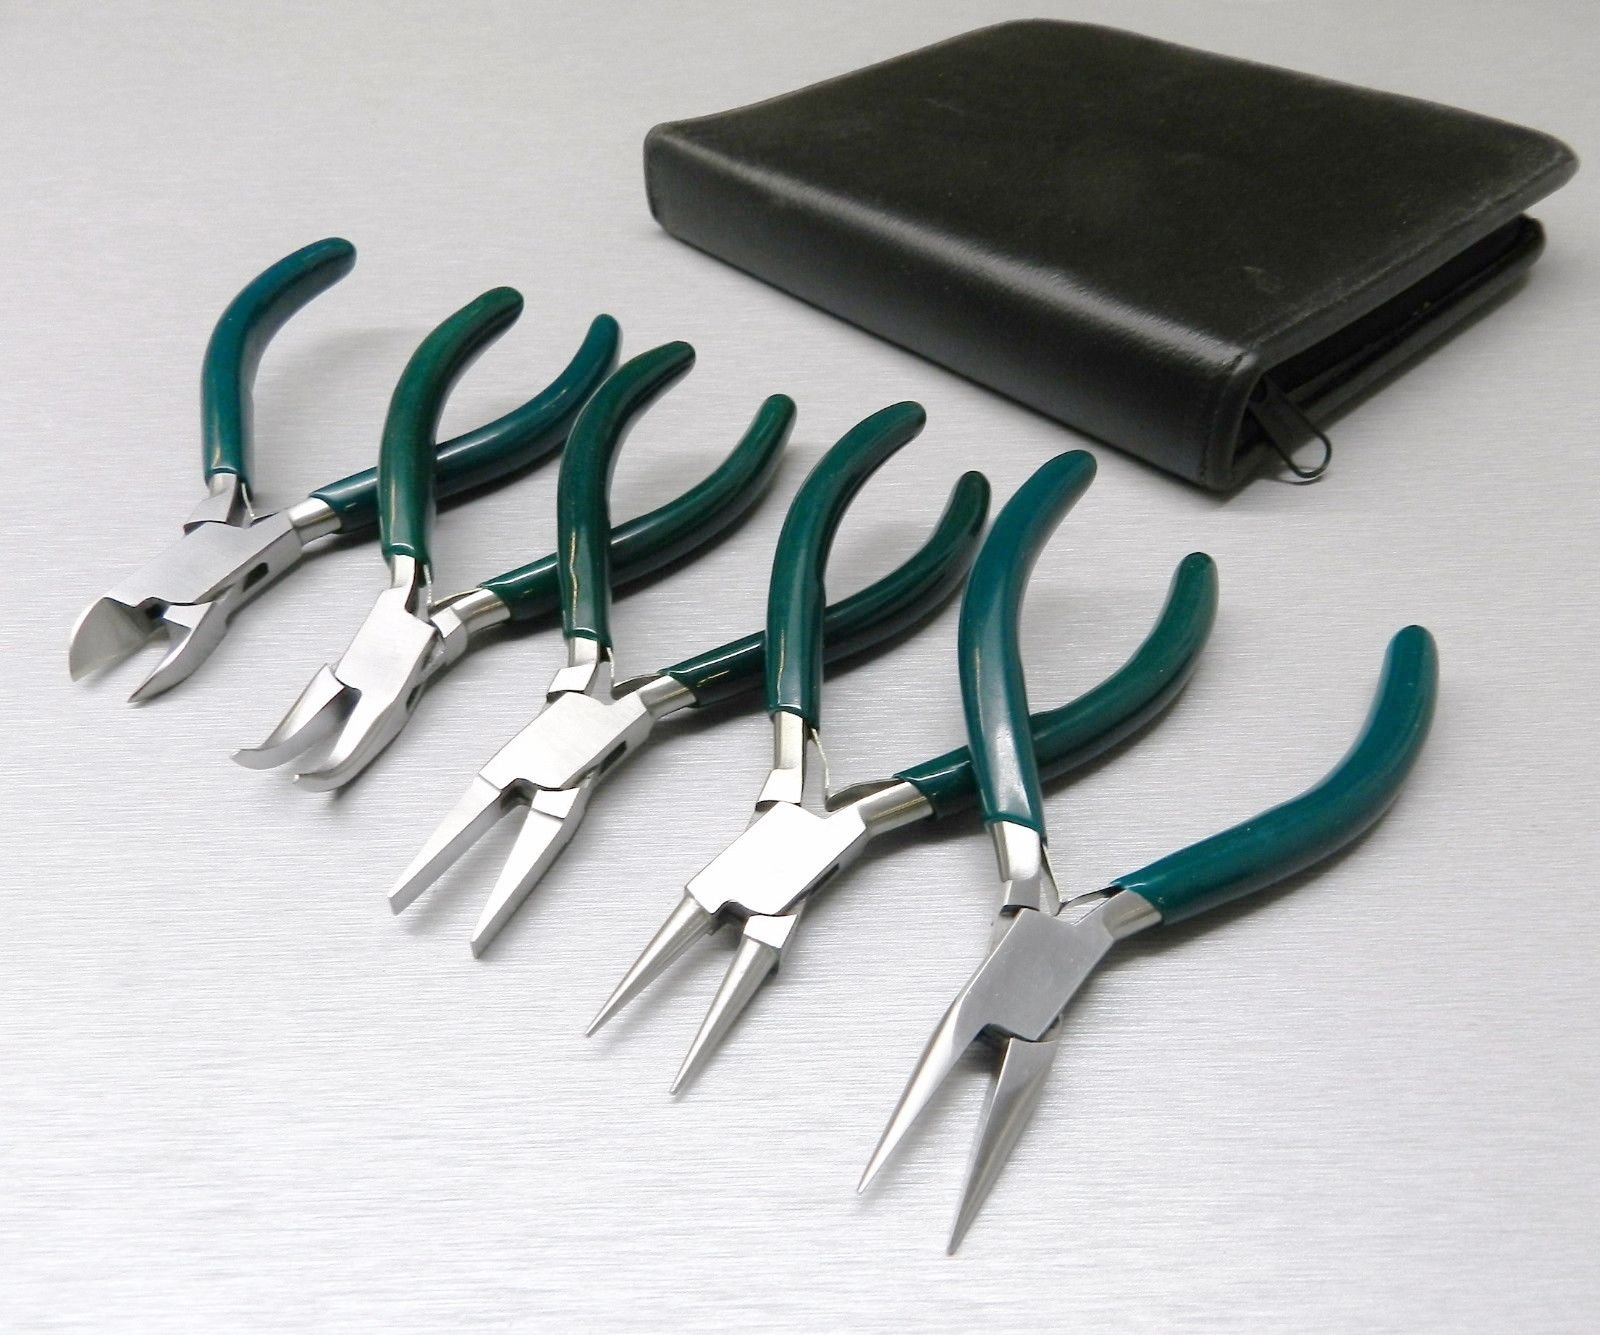 5 Pc JEWELERS PLIERS SET JEWELRY MAKING BEADING WIRE WRAPPING HOBBY 5'' PLIER KIT (LZ 1.5 FRE) by ACE Tools